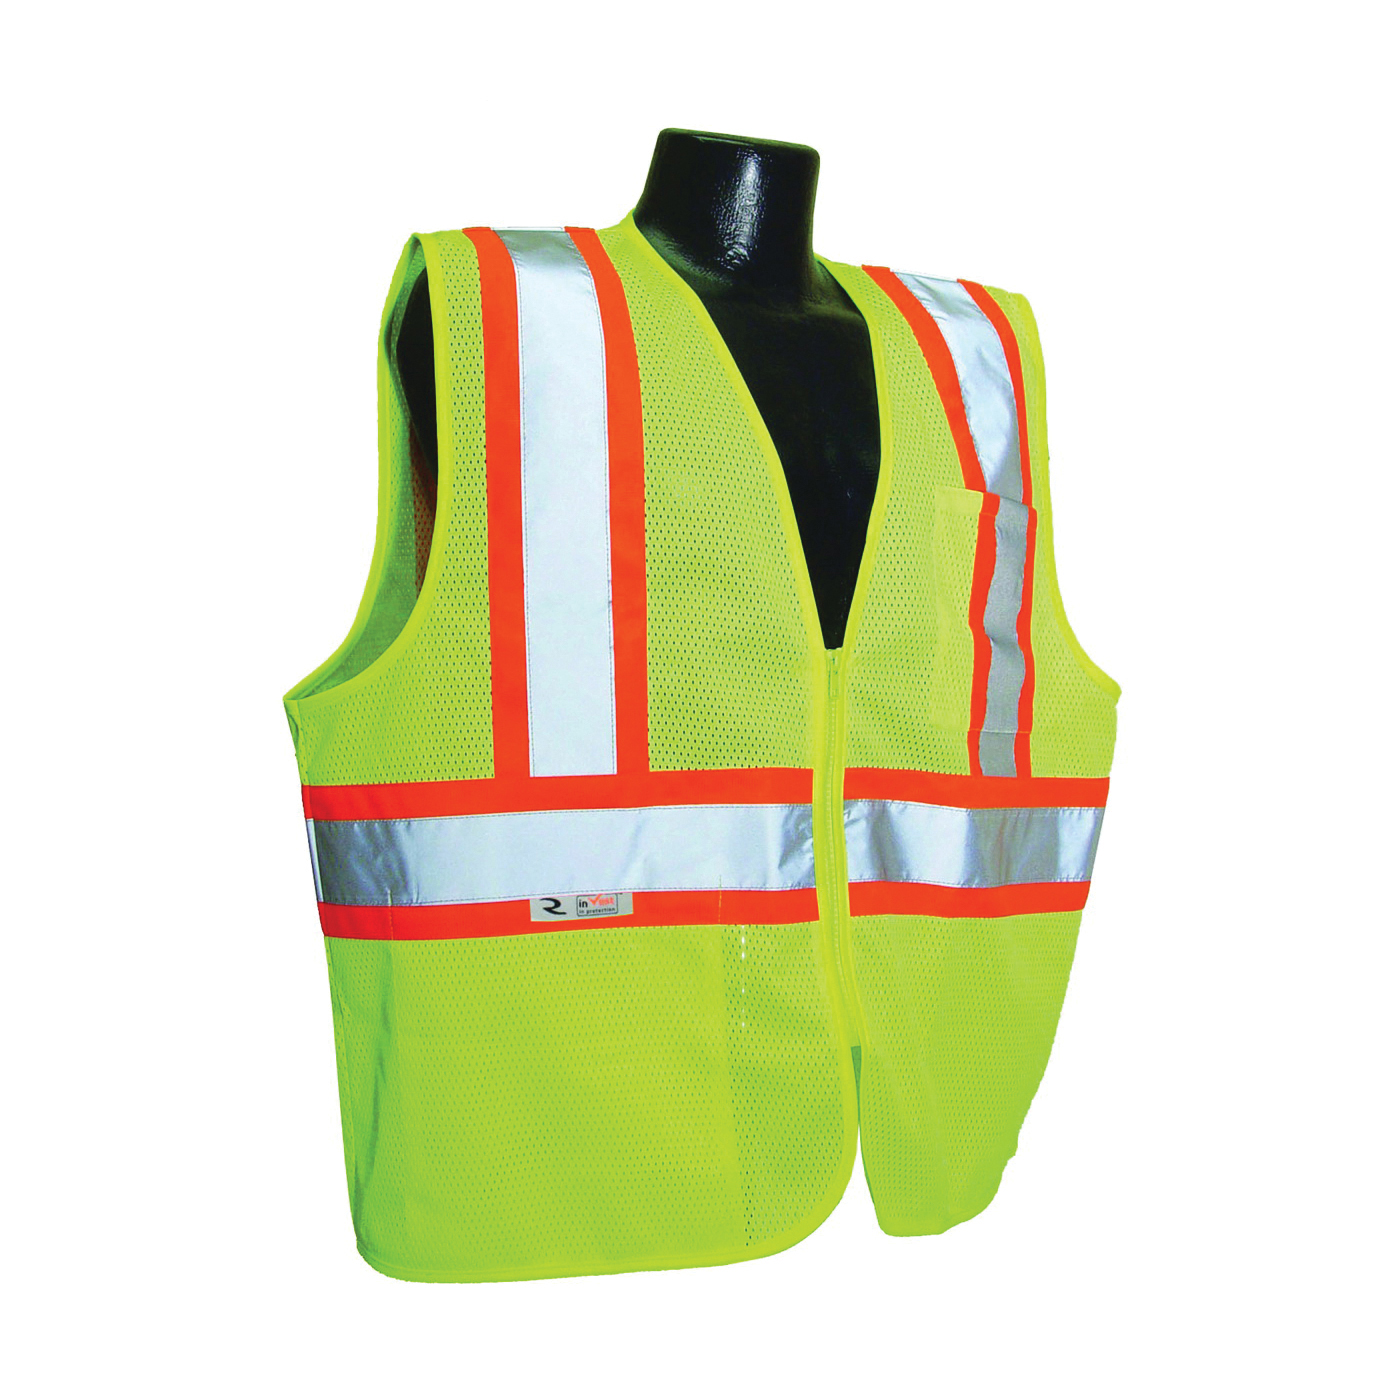 Picture of RADWEAR SV22-2ZGM-2X Safety Vest, 2XL, Unisex, Fits to Chest Size: 30 in, Polyester, Green, Zipper Closure